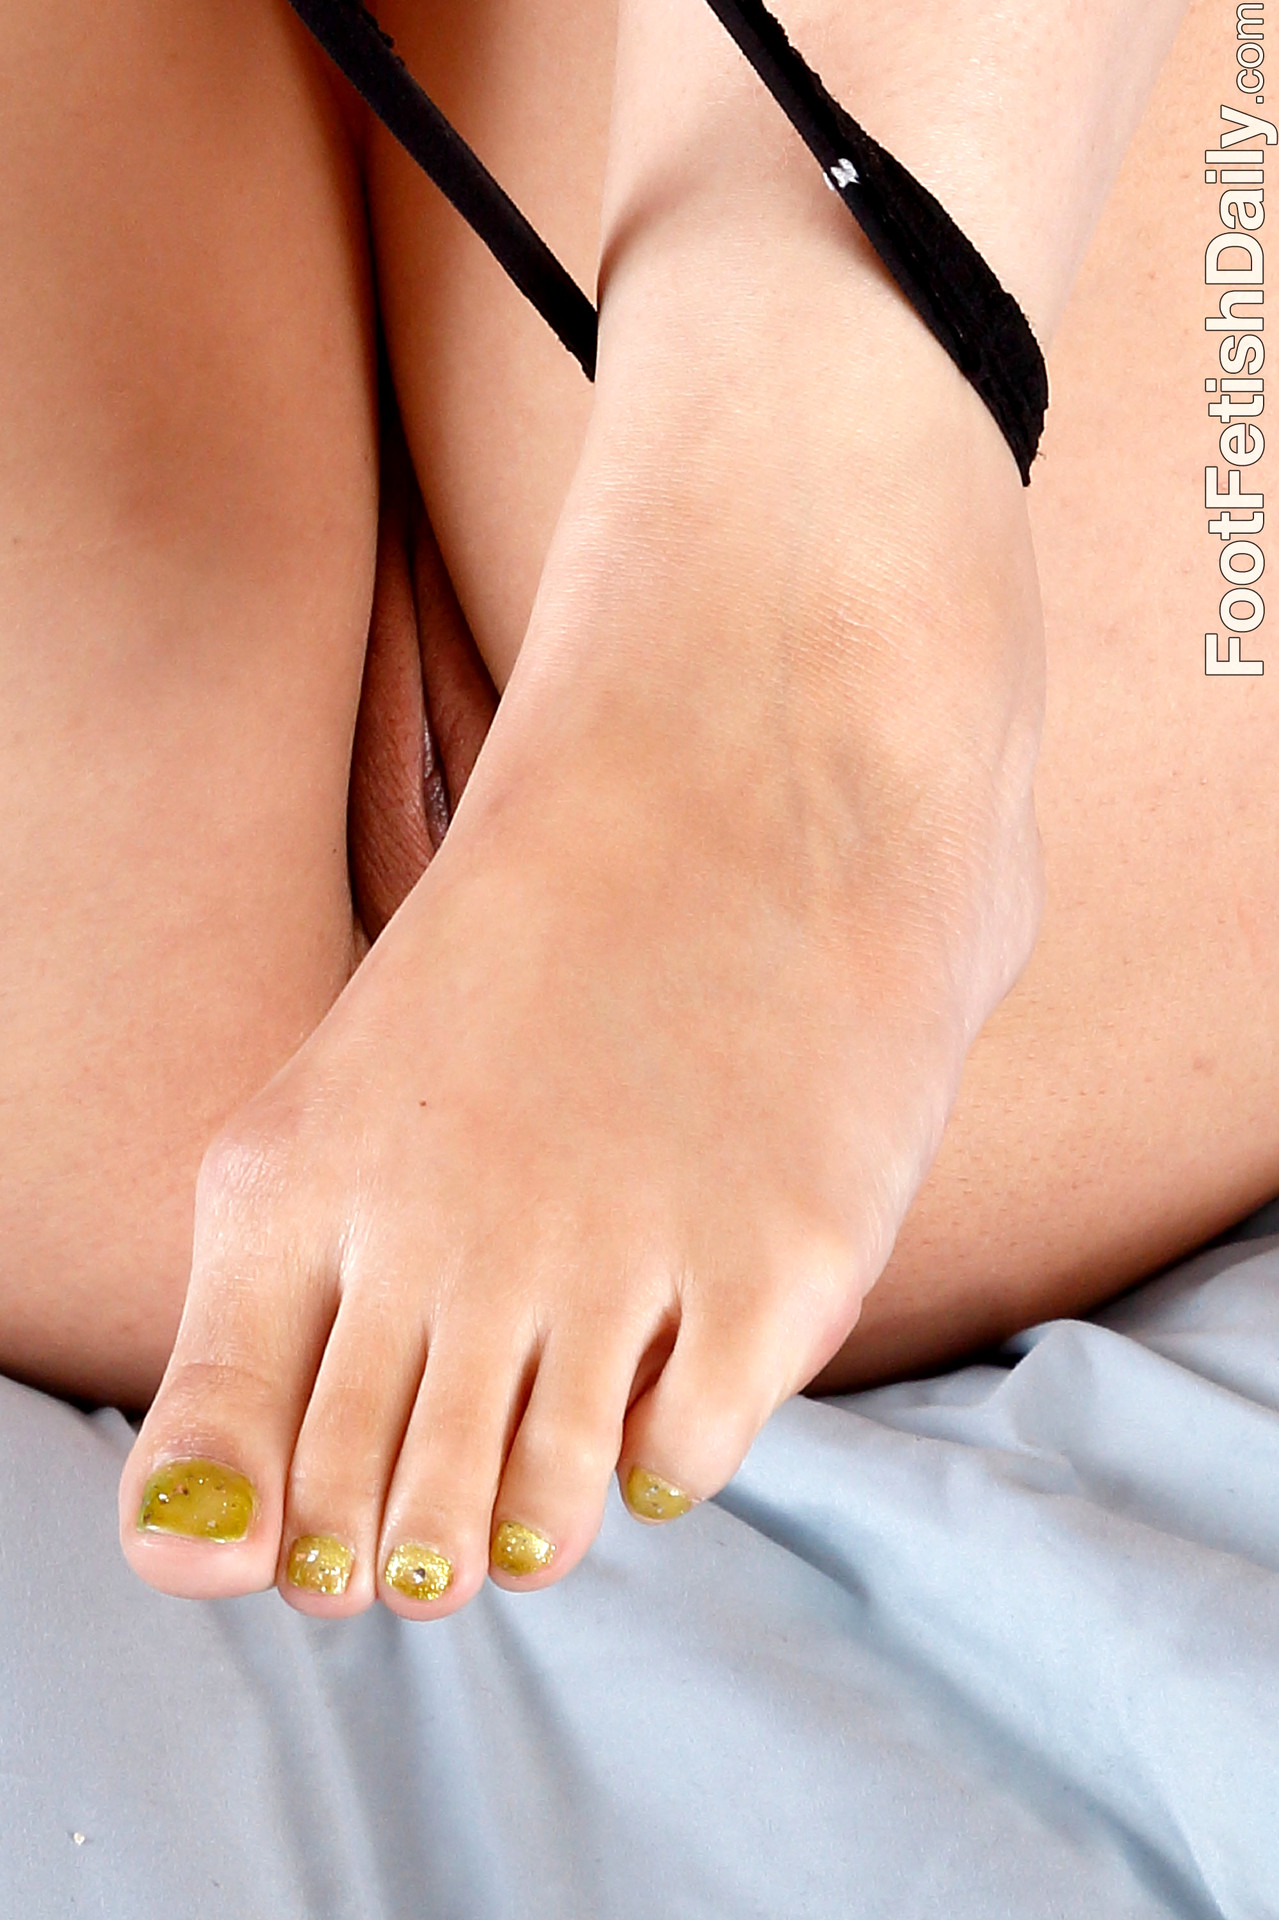 Babe Today Foot Fetish Daily Nadia Ali Rated X Feet Area -6033